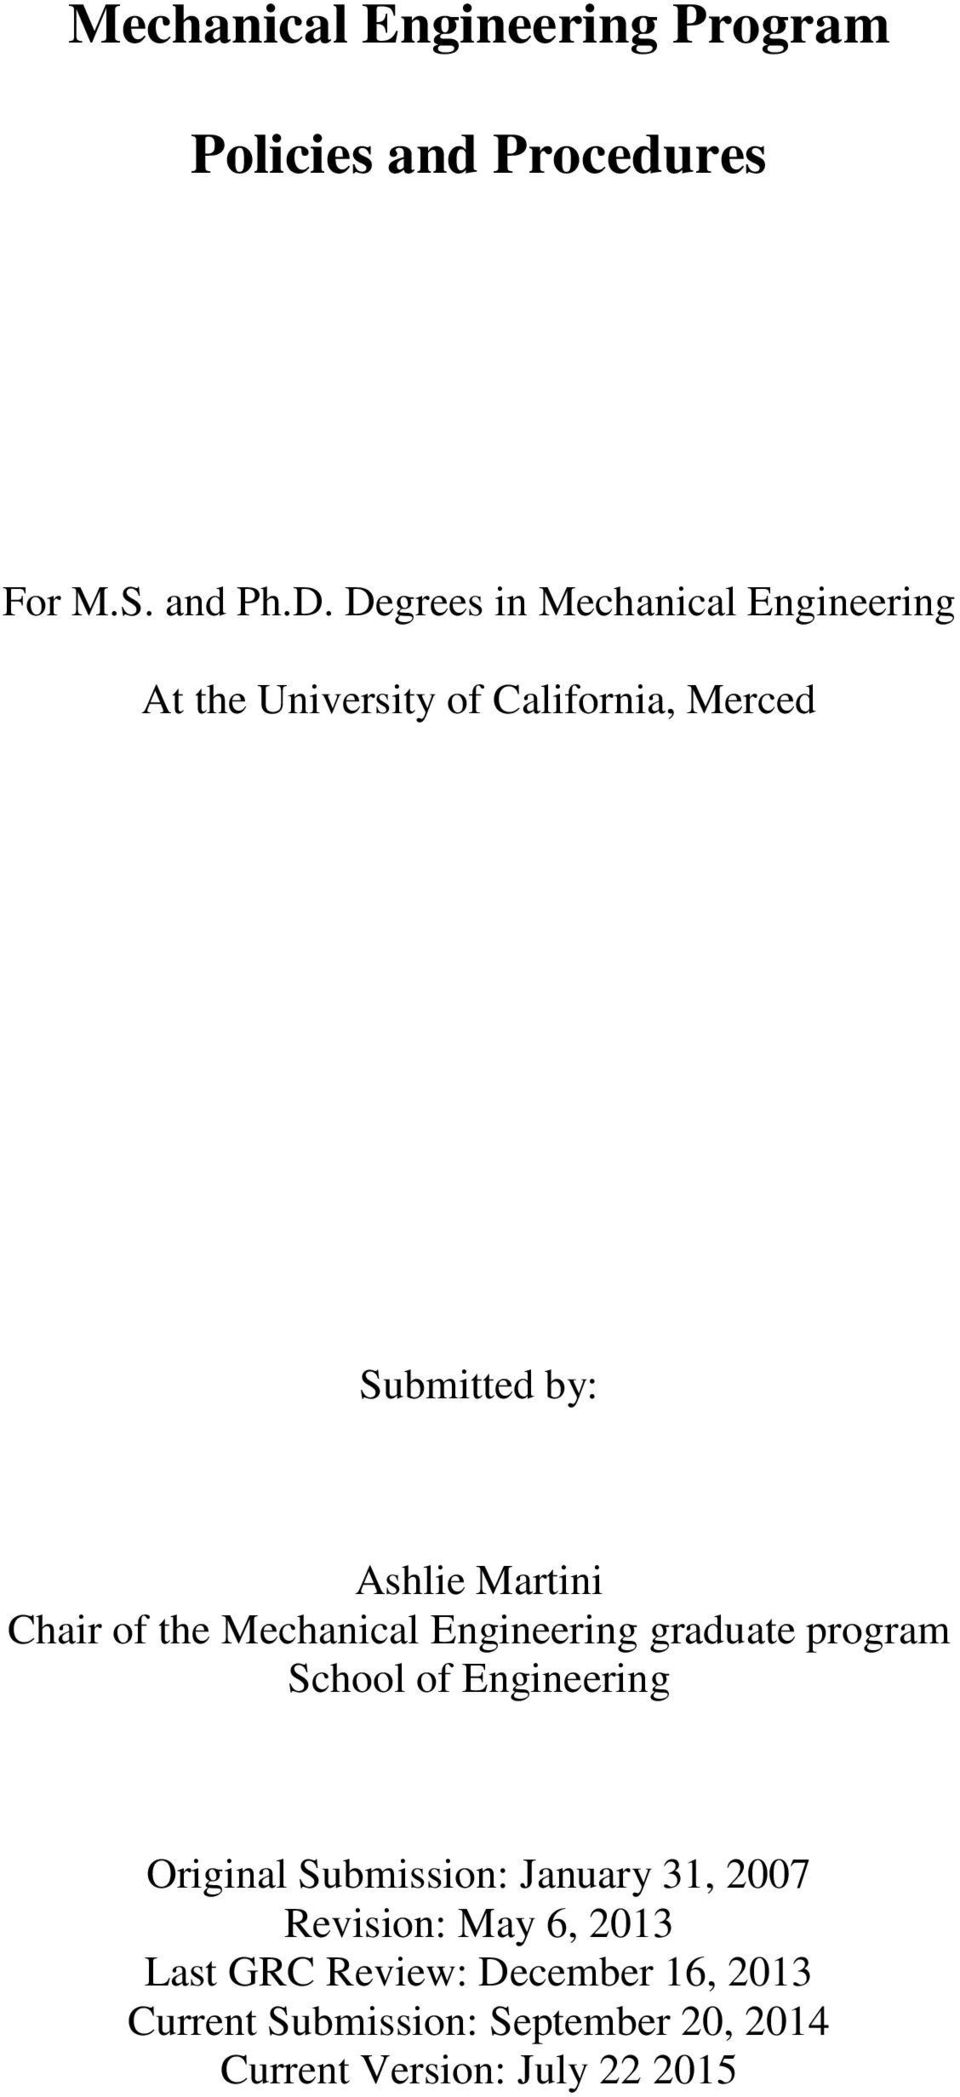 Chair of the Mechanical Engineering graduate program School of Engineering Original Submission: January